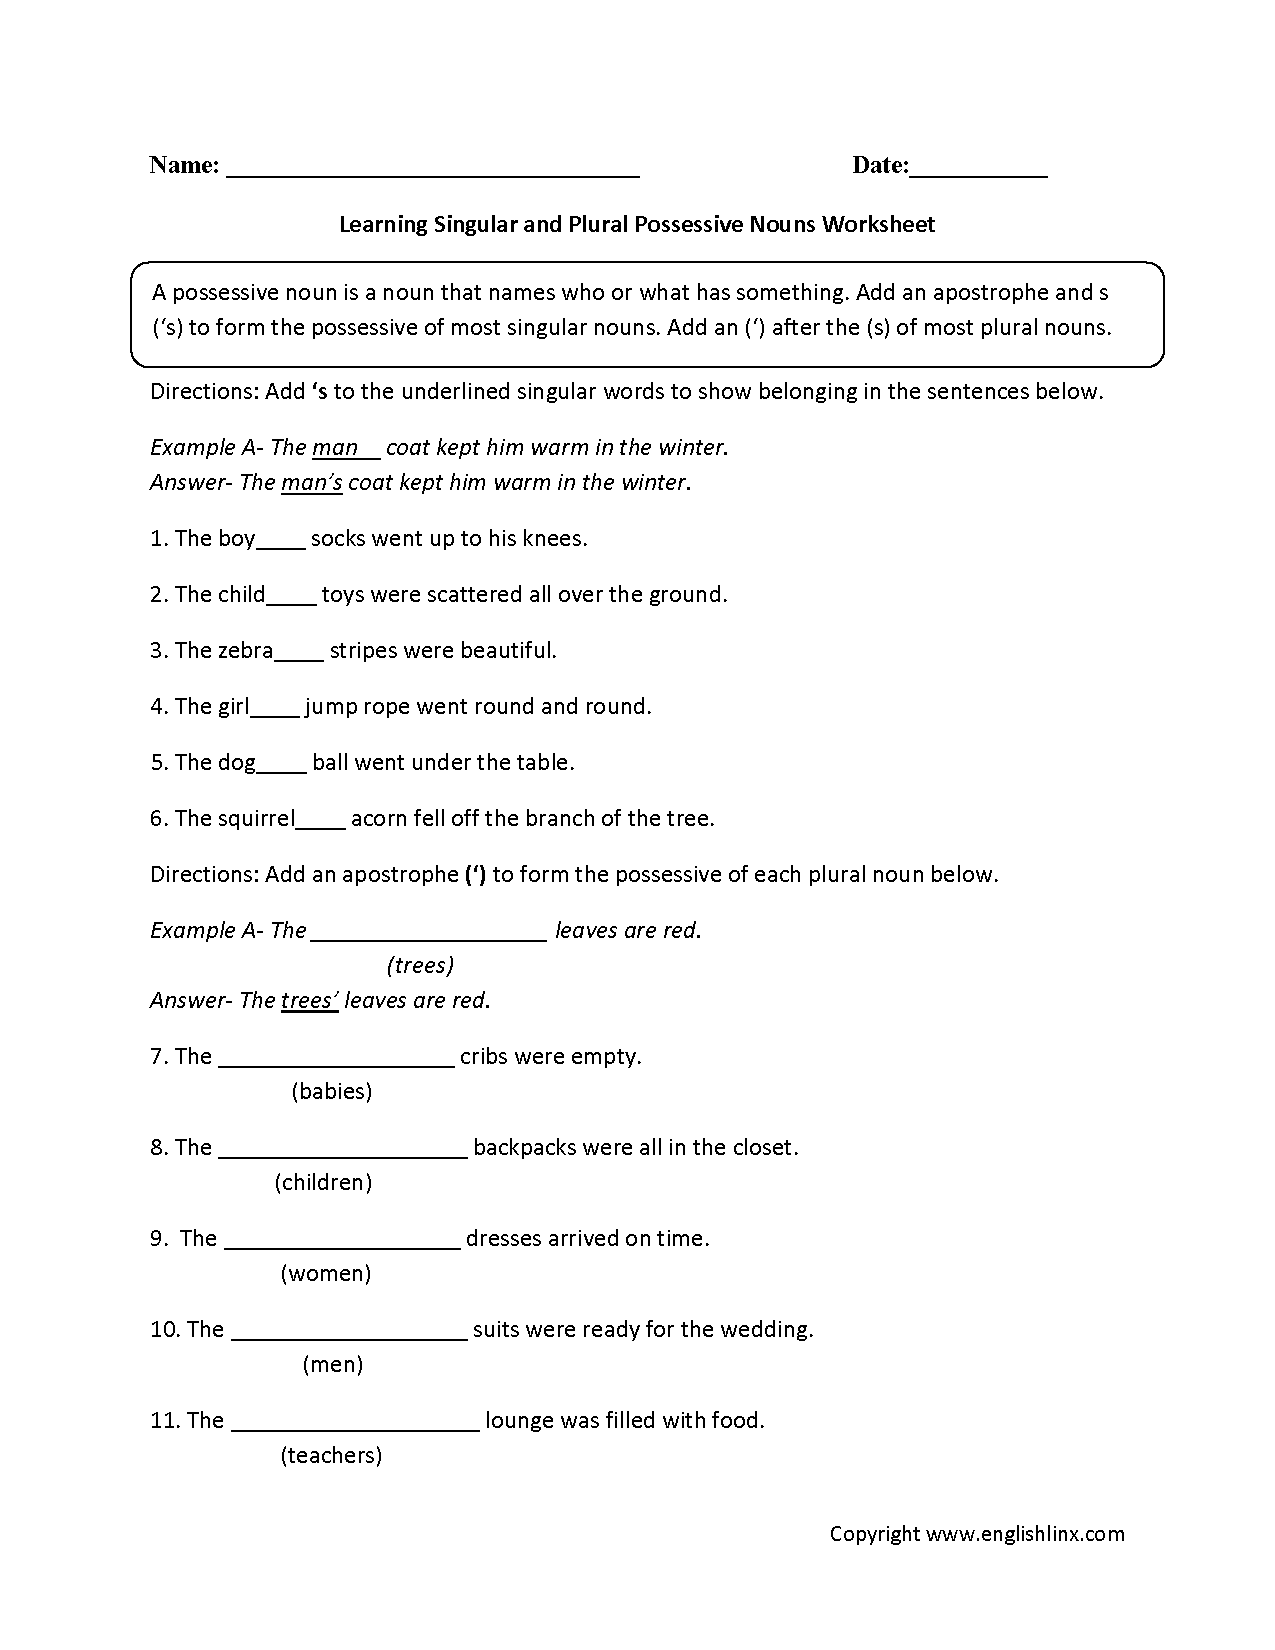 Learning Singular And Plural Possessive Nouns Worksheets